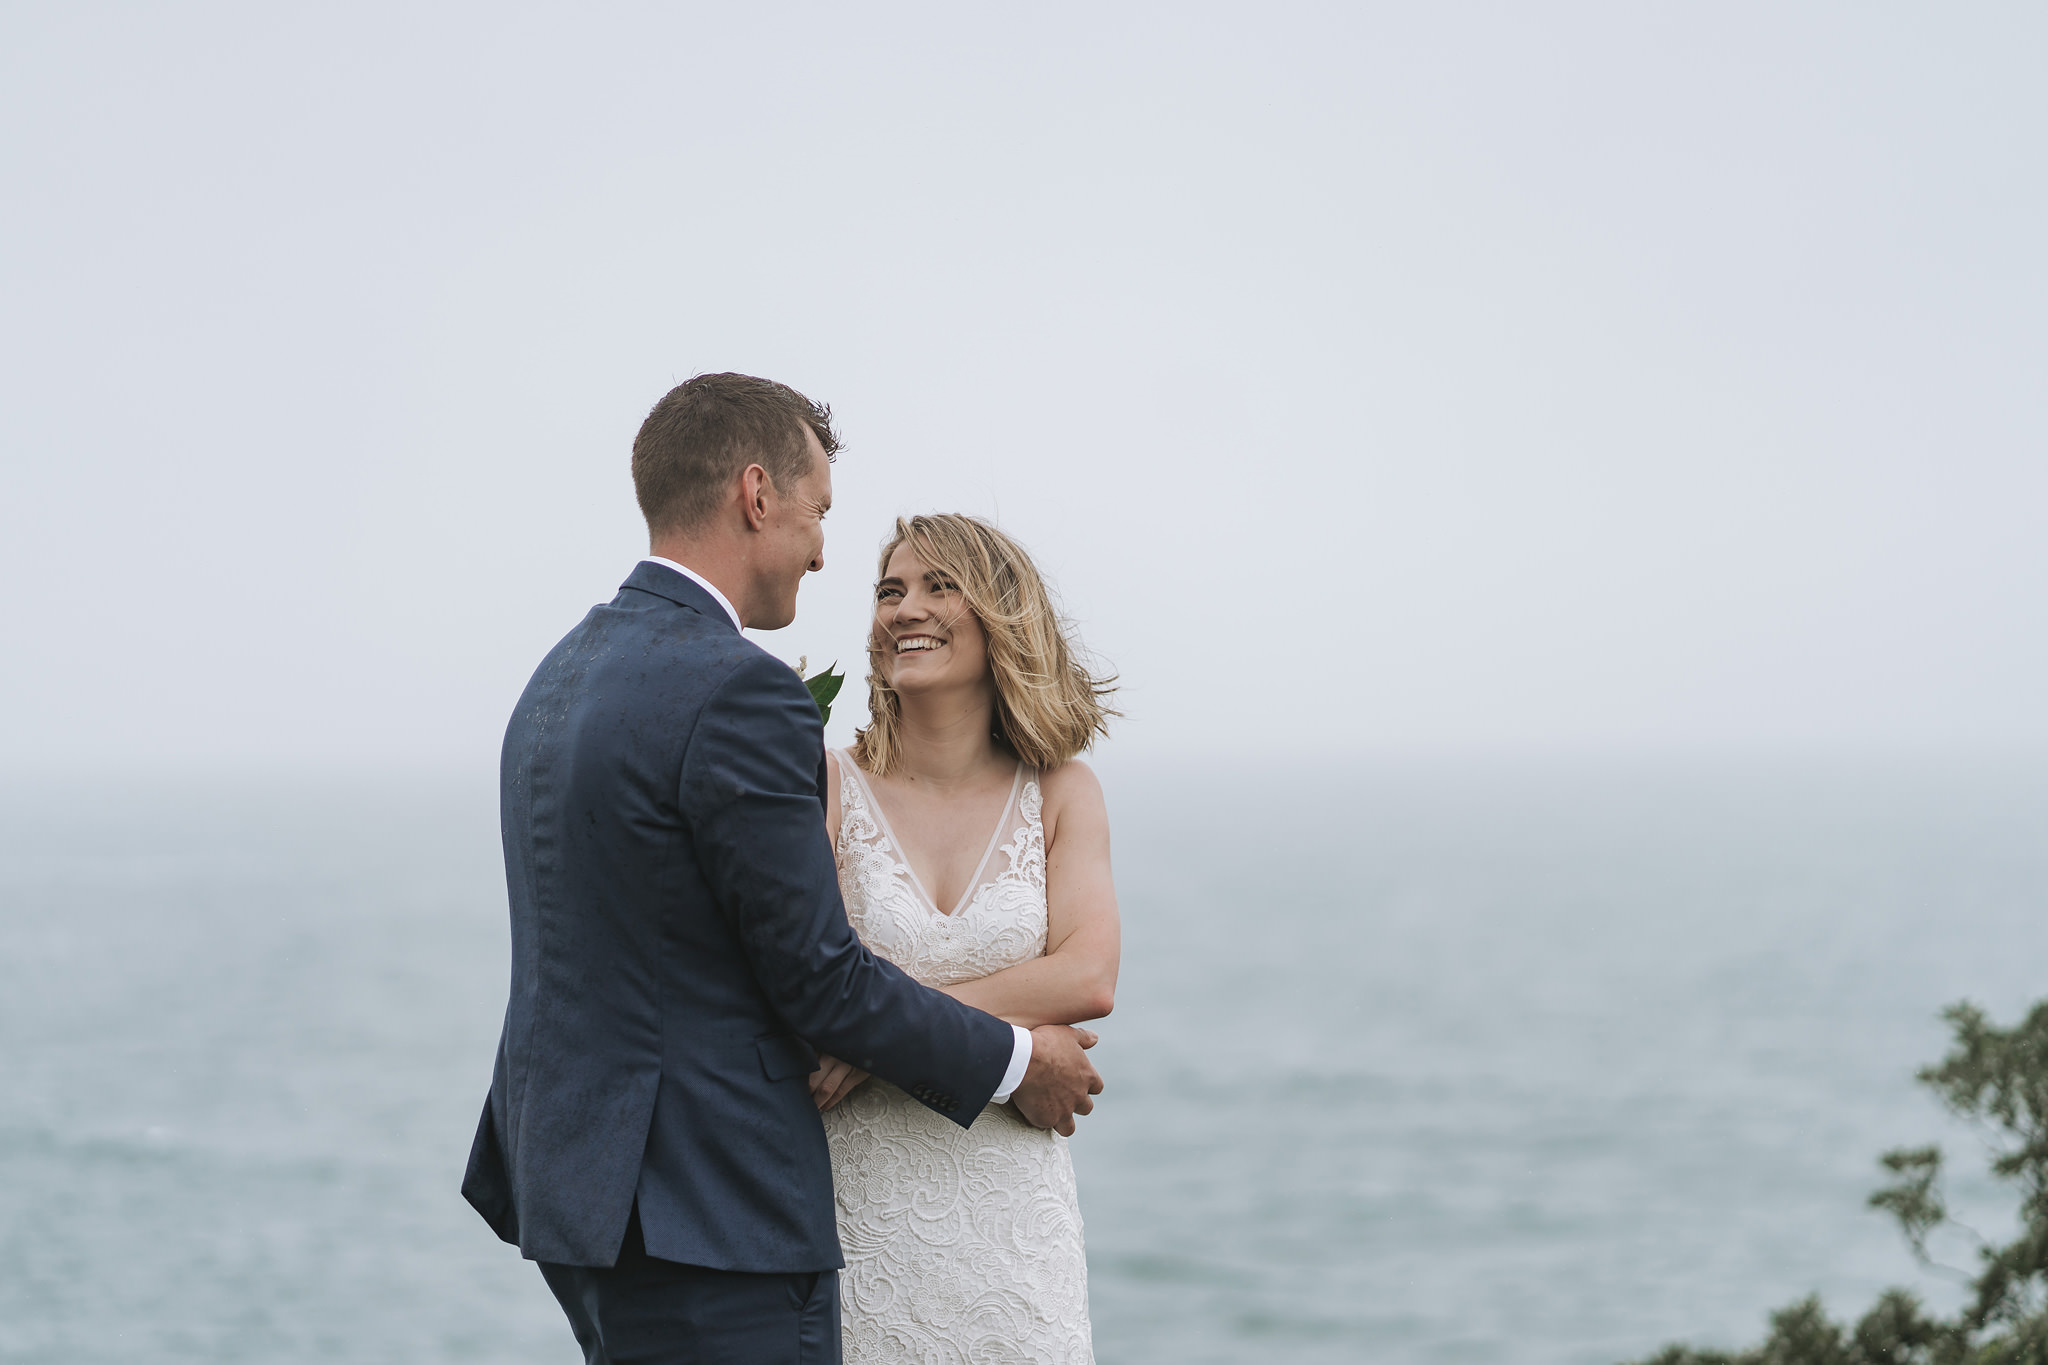 newfound-s-a-tauranga-new-zealand-wedding-photography-318